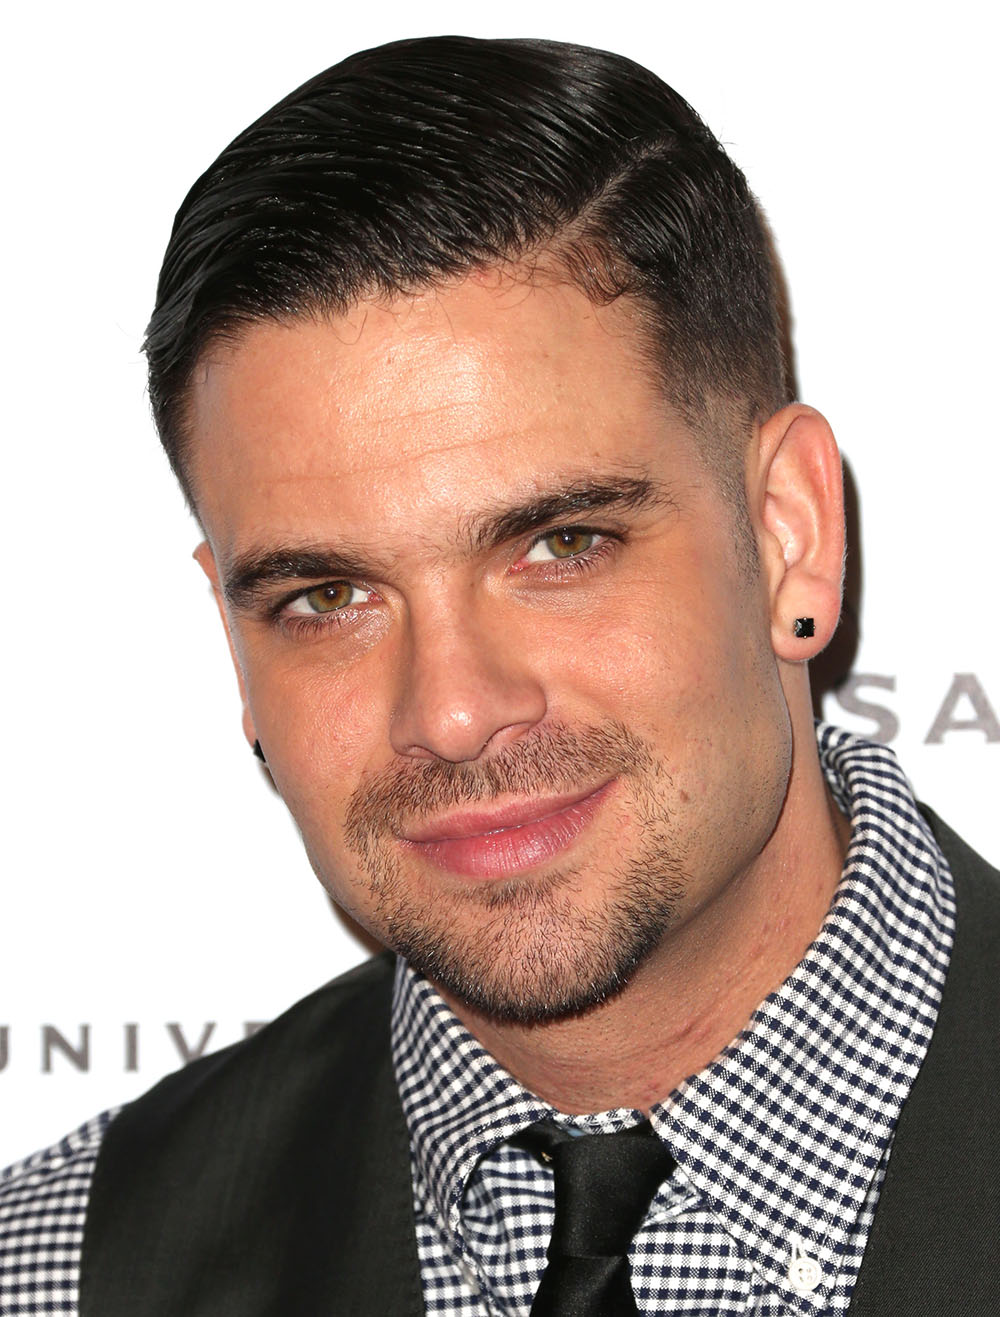 Mark Salling has died